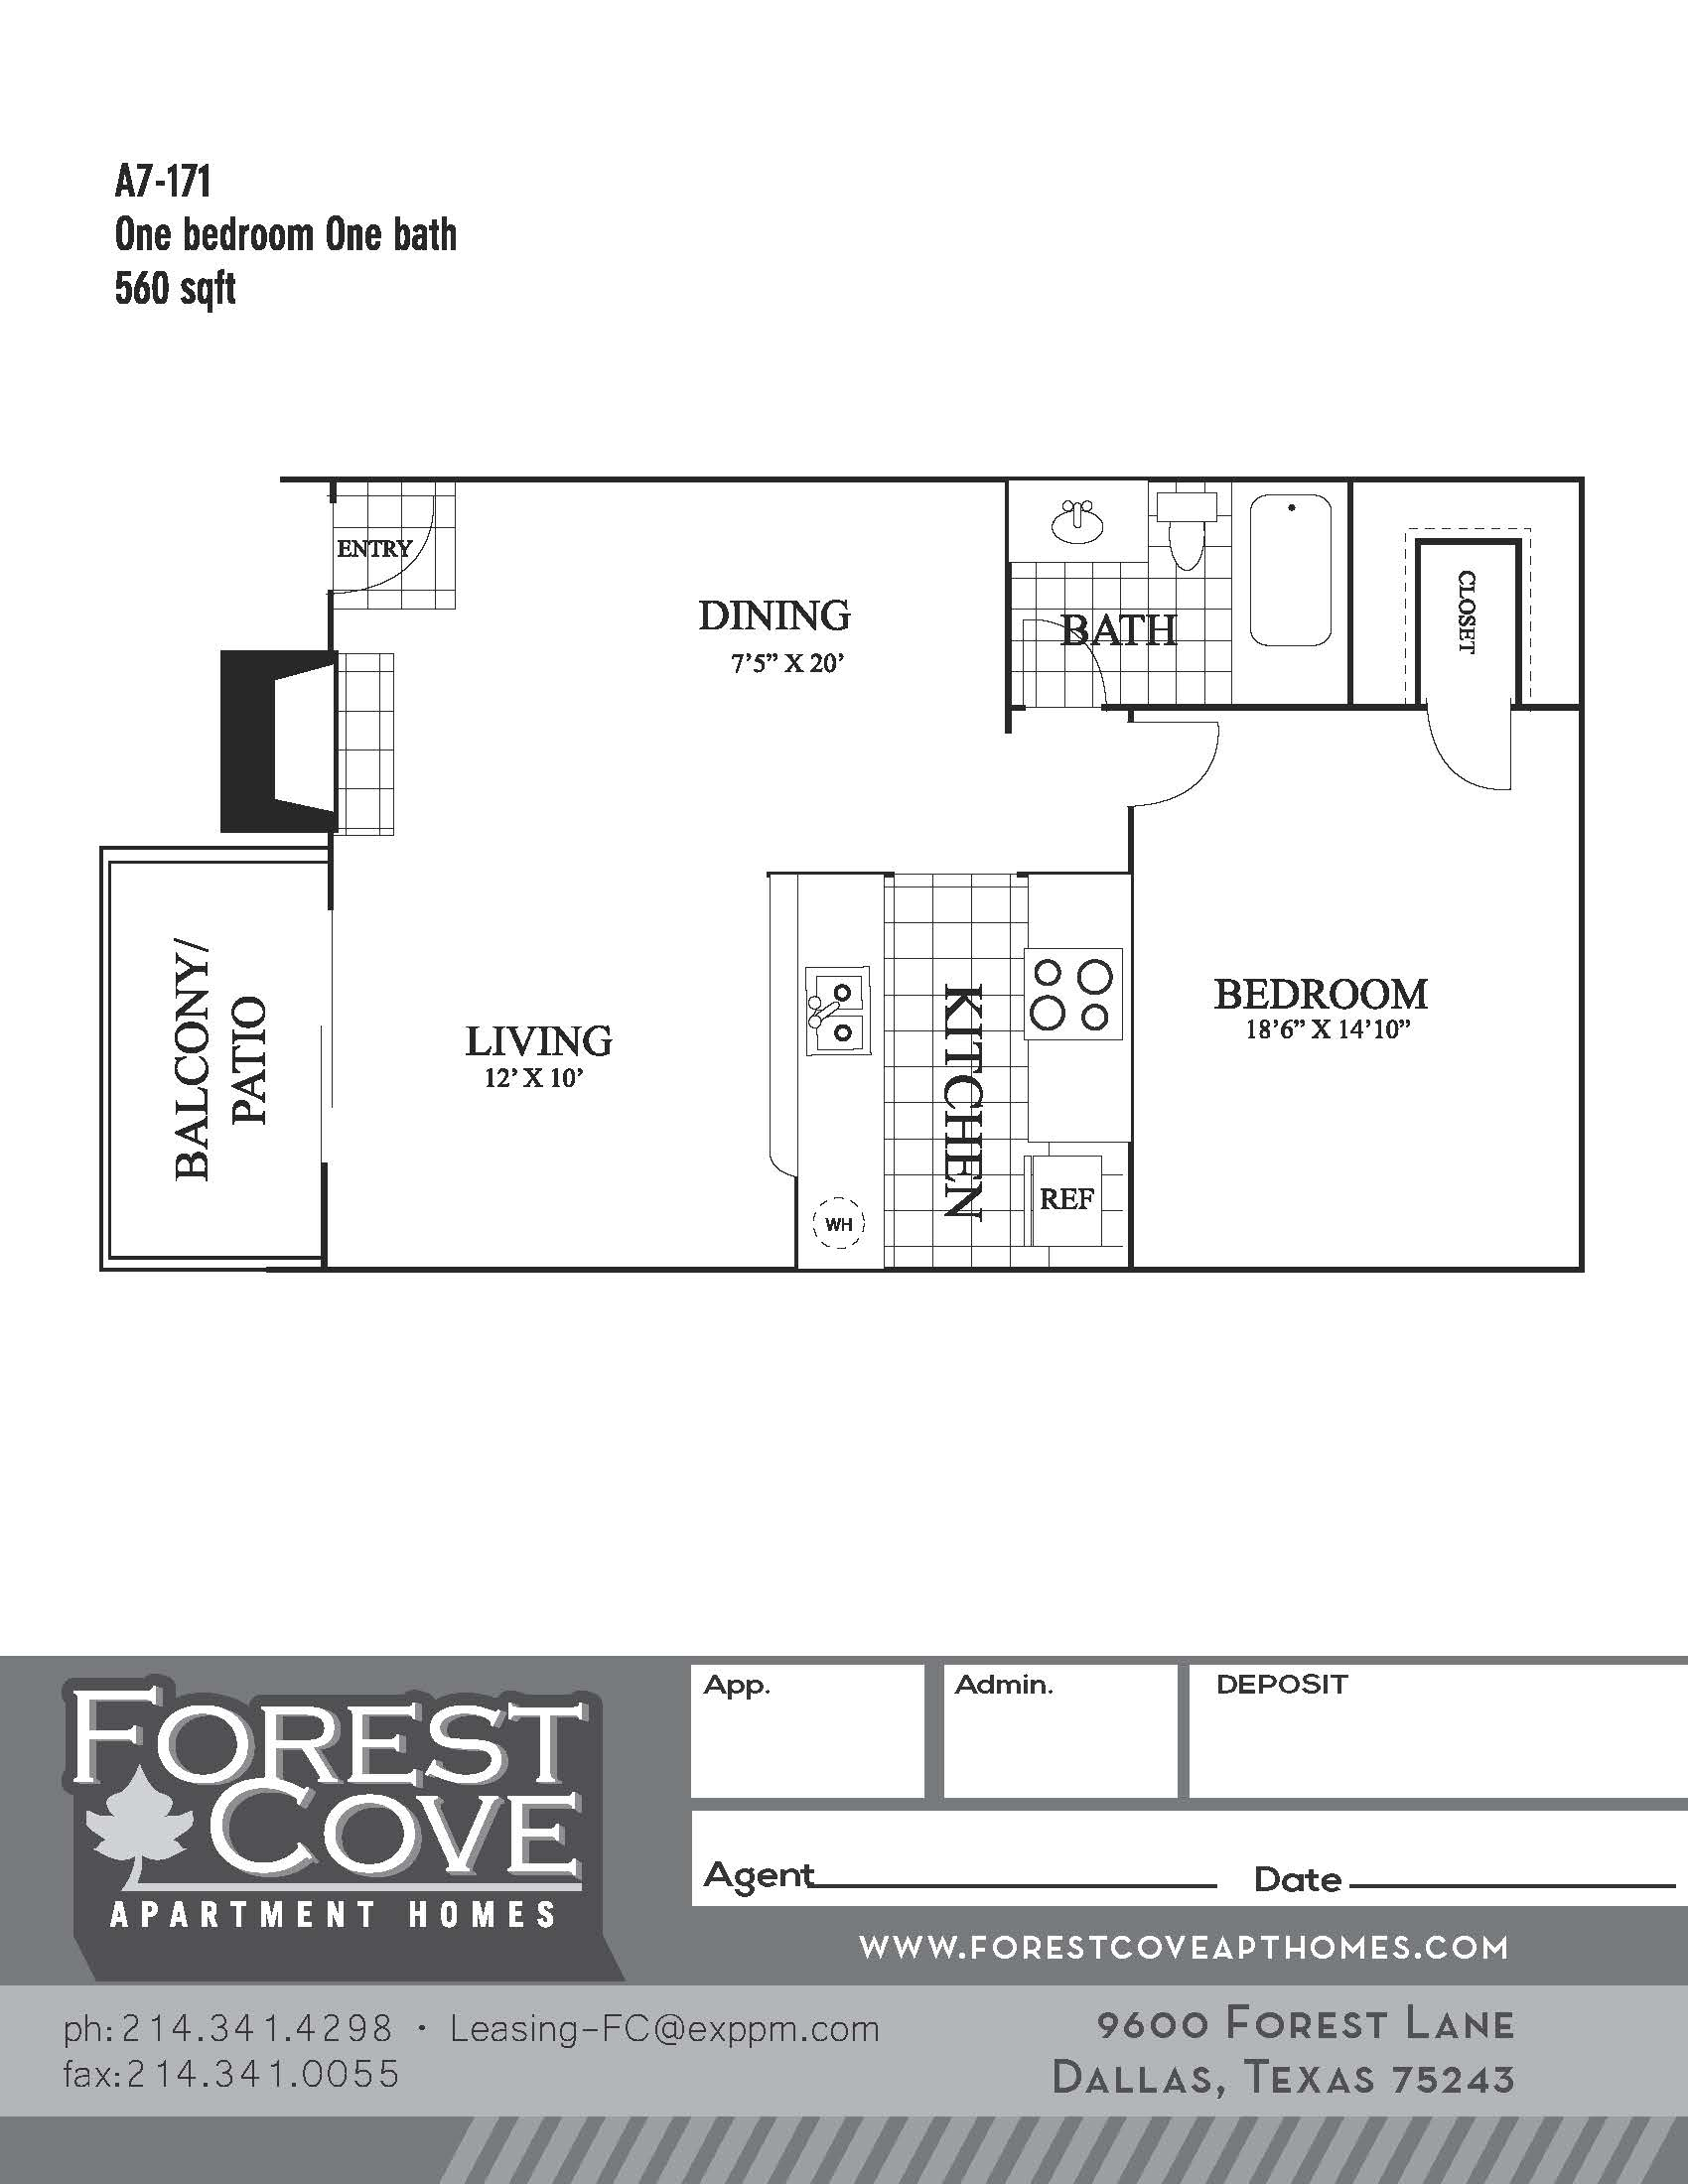 Forest Cove Apartments - Floorplan - A7